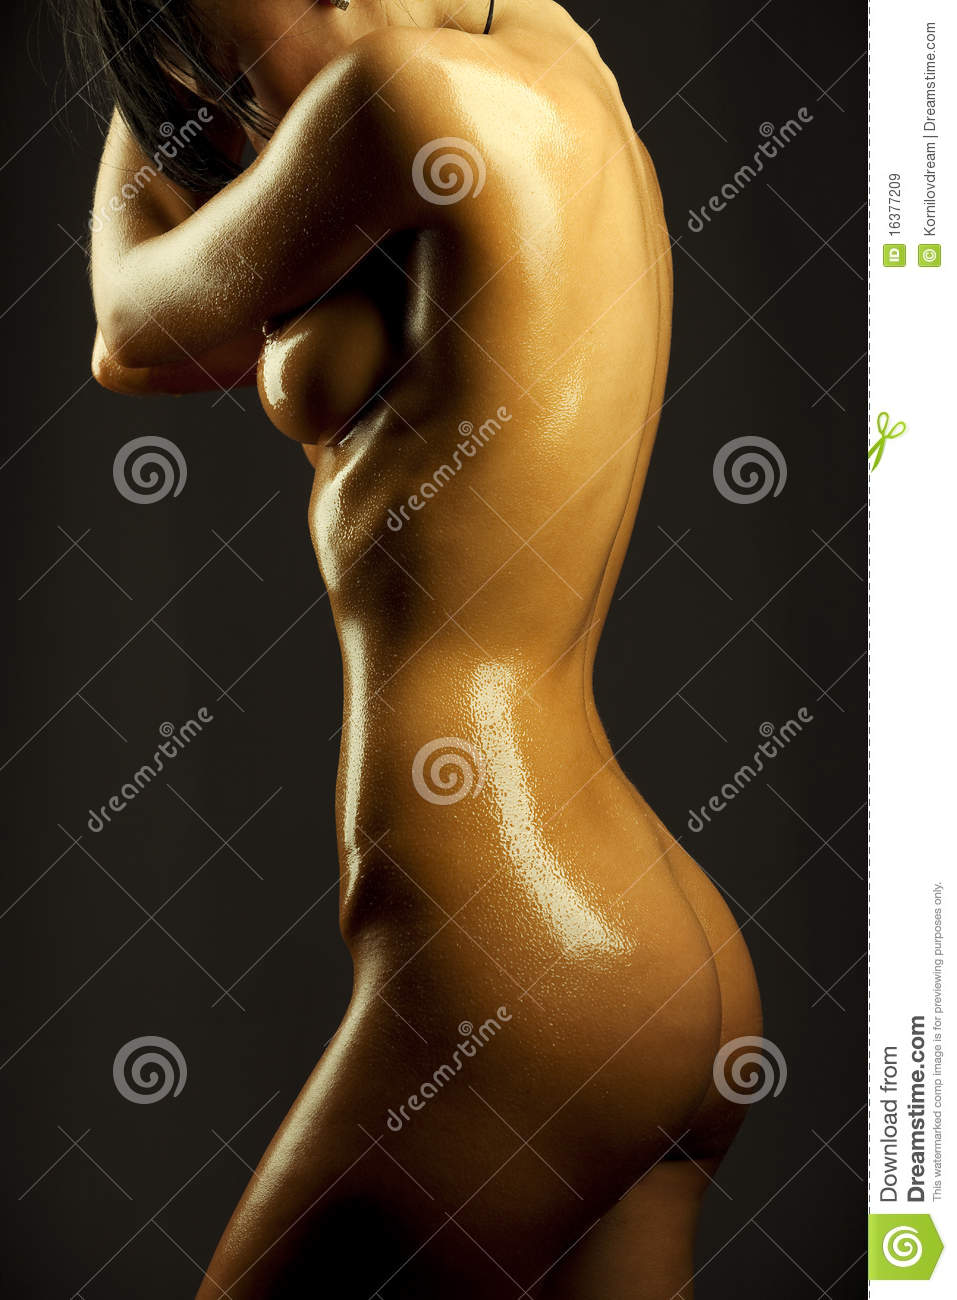 Are naked woman covered in Tell